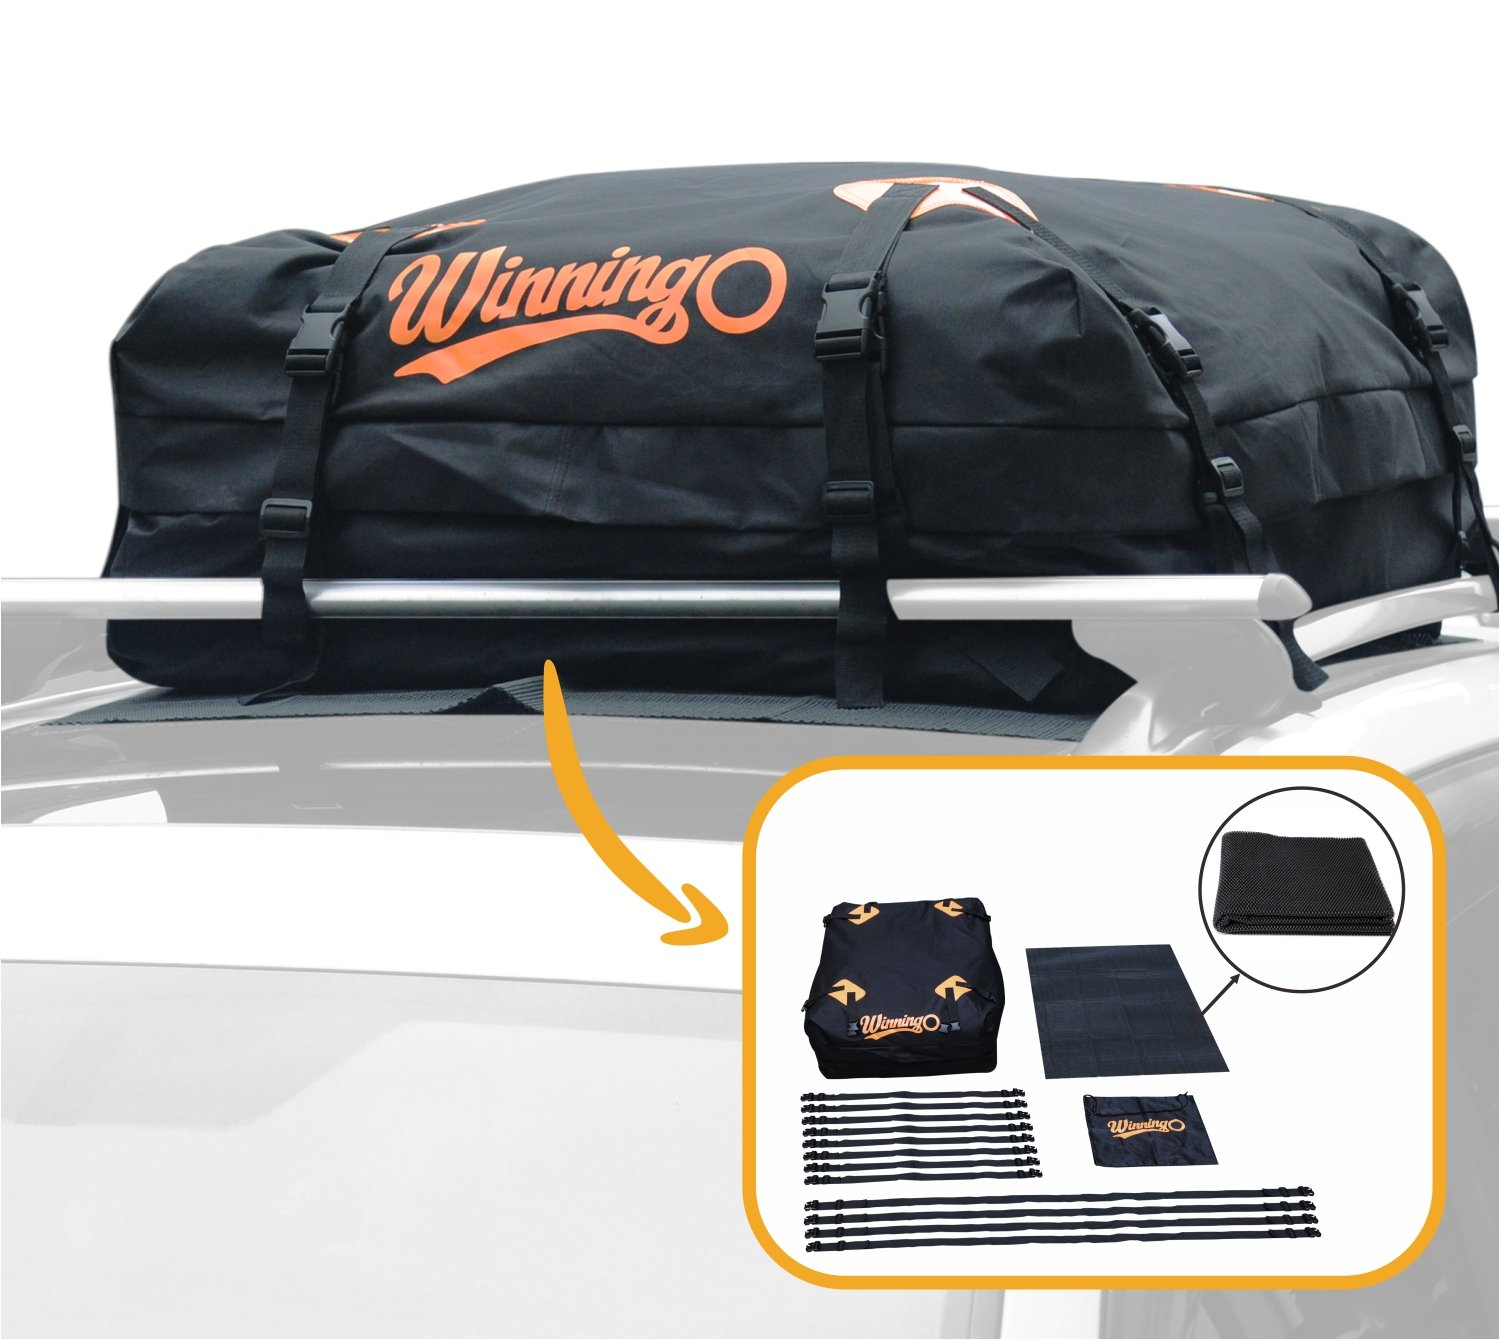 WINNINGO Cargo Bag, Water Resistant Cargo Bag Easy to Install Soft Rooftop Luggage Carriers Works with or Without Roof Rack (Free Protective Mat)